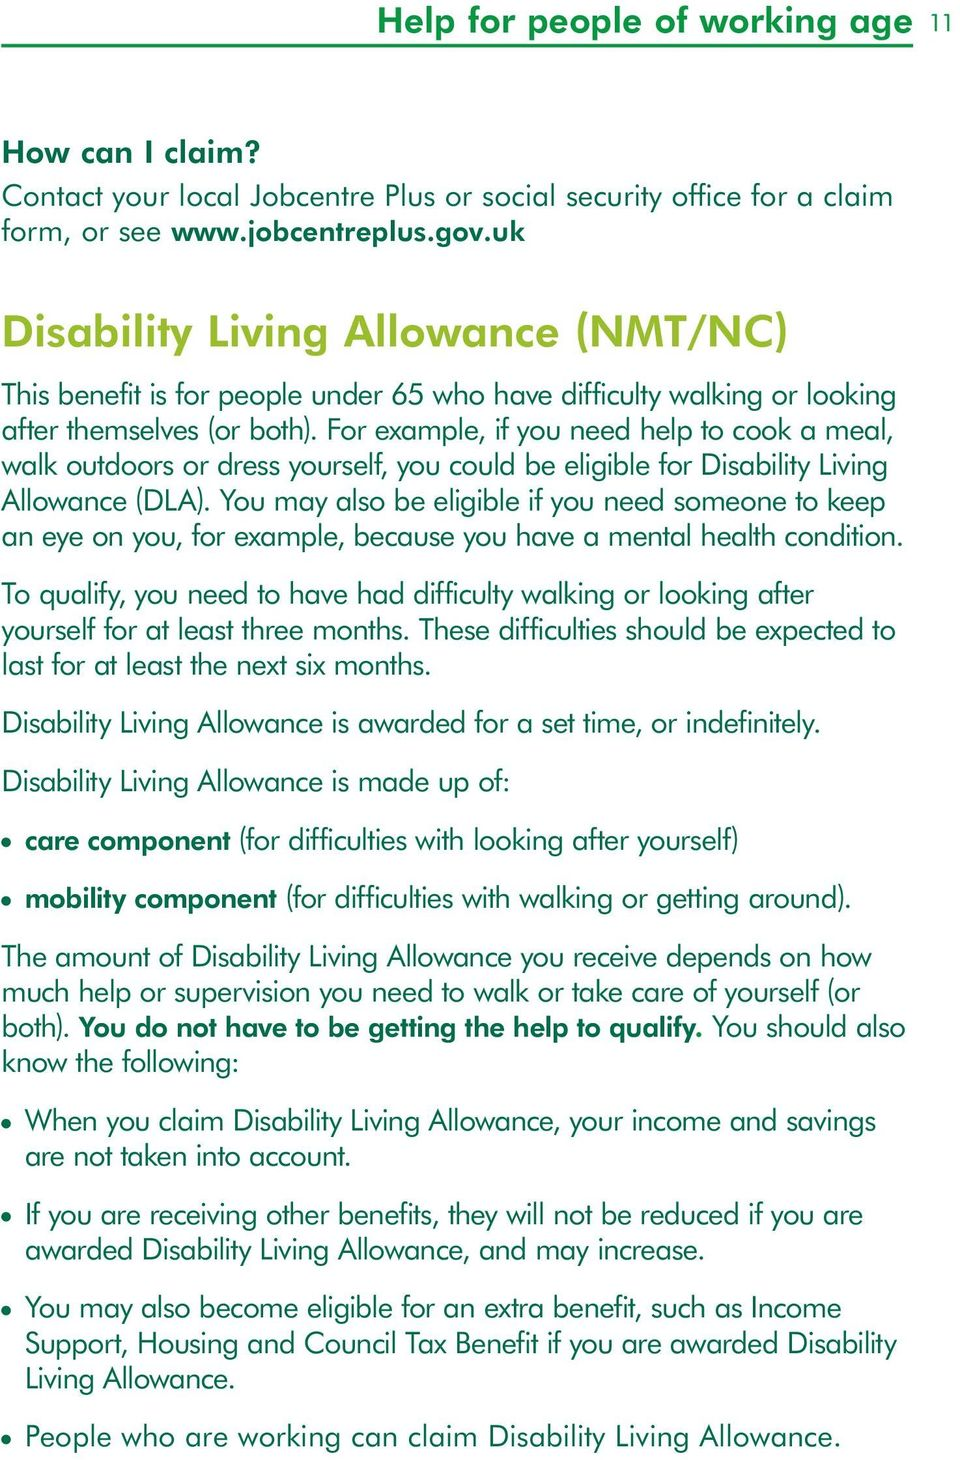 For example, if you eed help to cook a meal, walk outdoors or dress yourself, you could be eligible for Disability Livig Allowace (DLA).